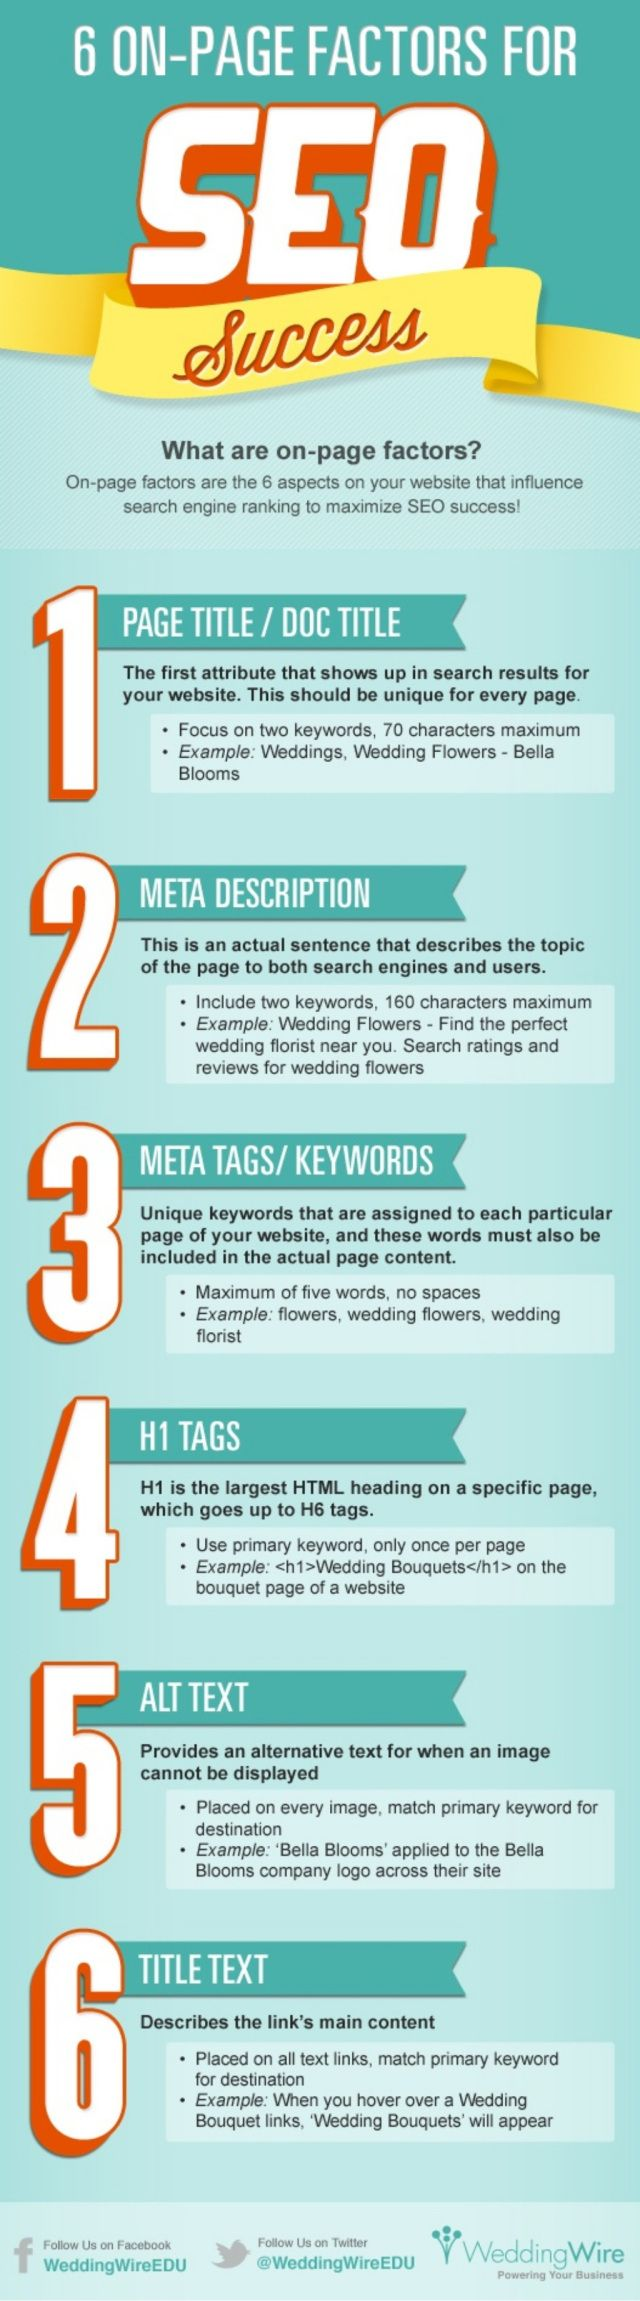 6 On-Page Factors For SEO Success #infographic #infografía